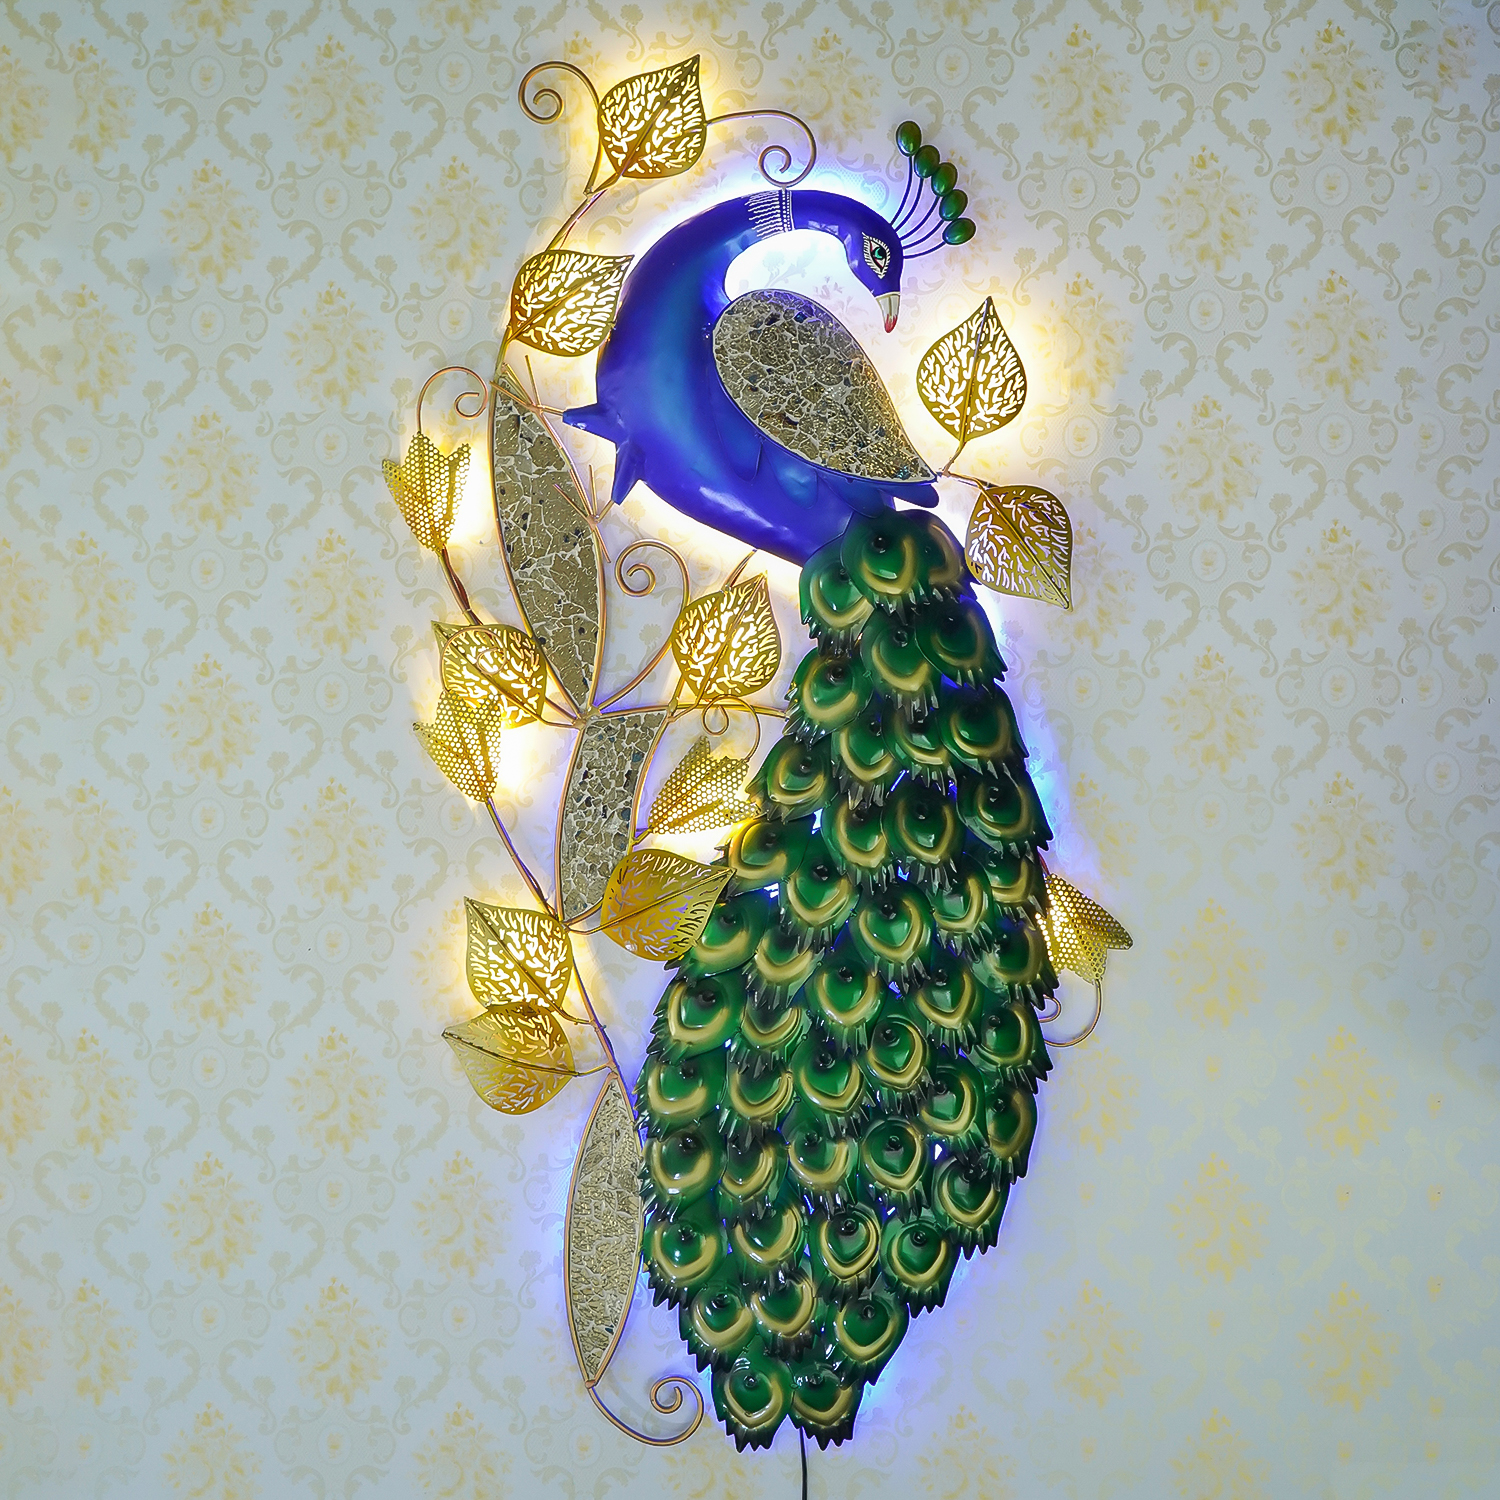 Decorative Colorful Peocock Handcrafted Iron Wall Hanging with background LEDs Indian Home Decor